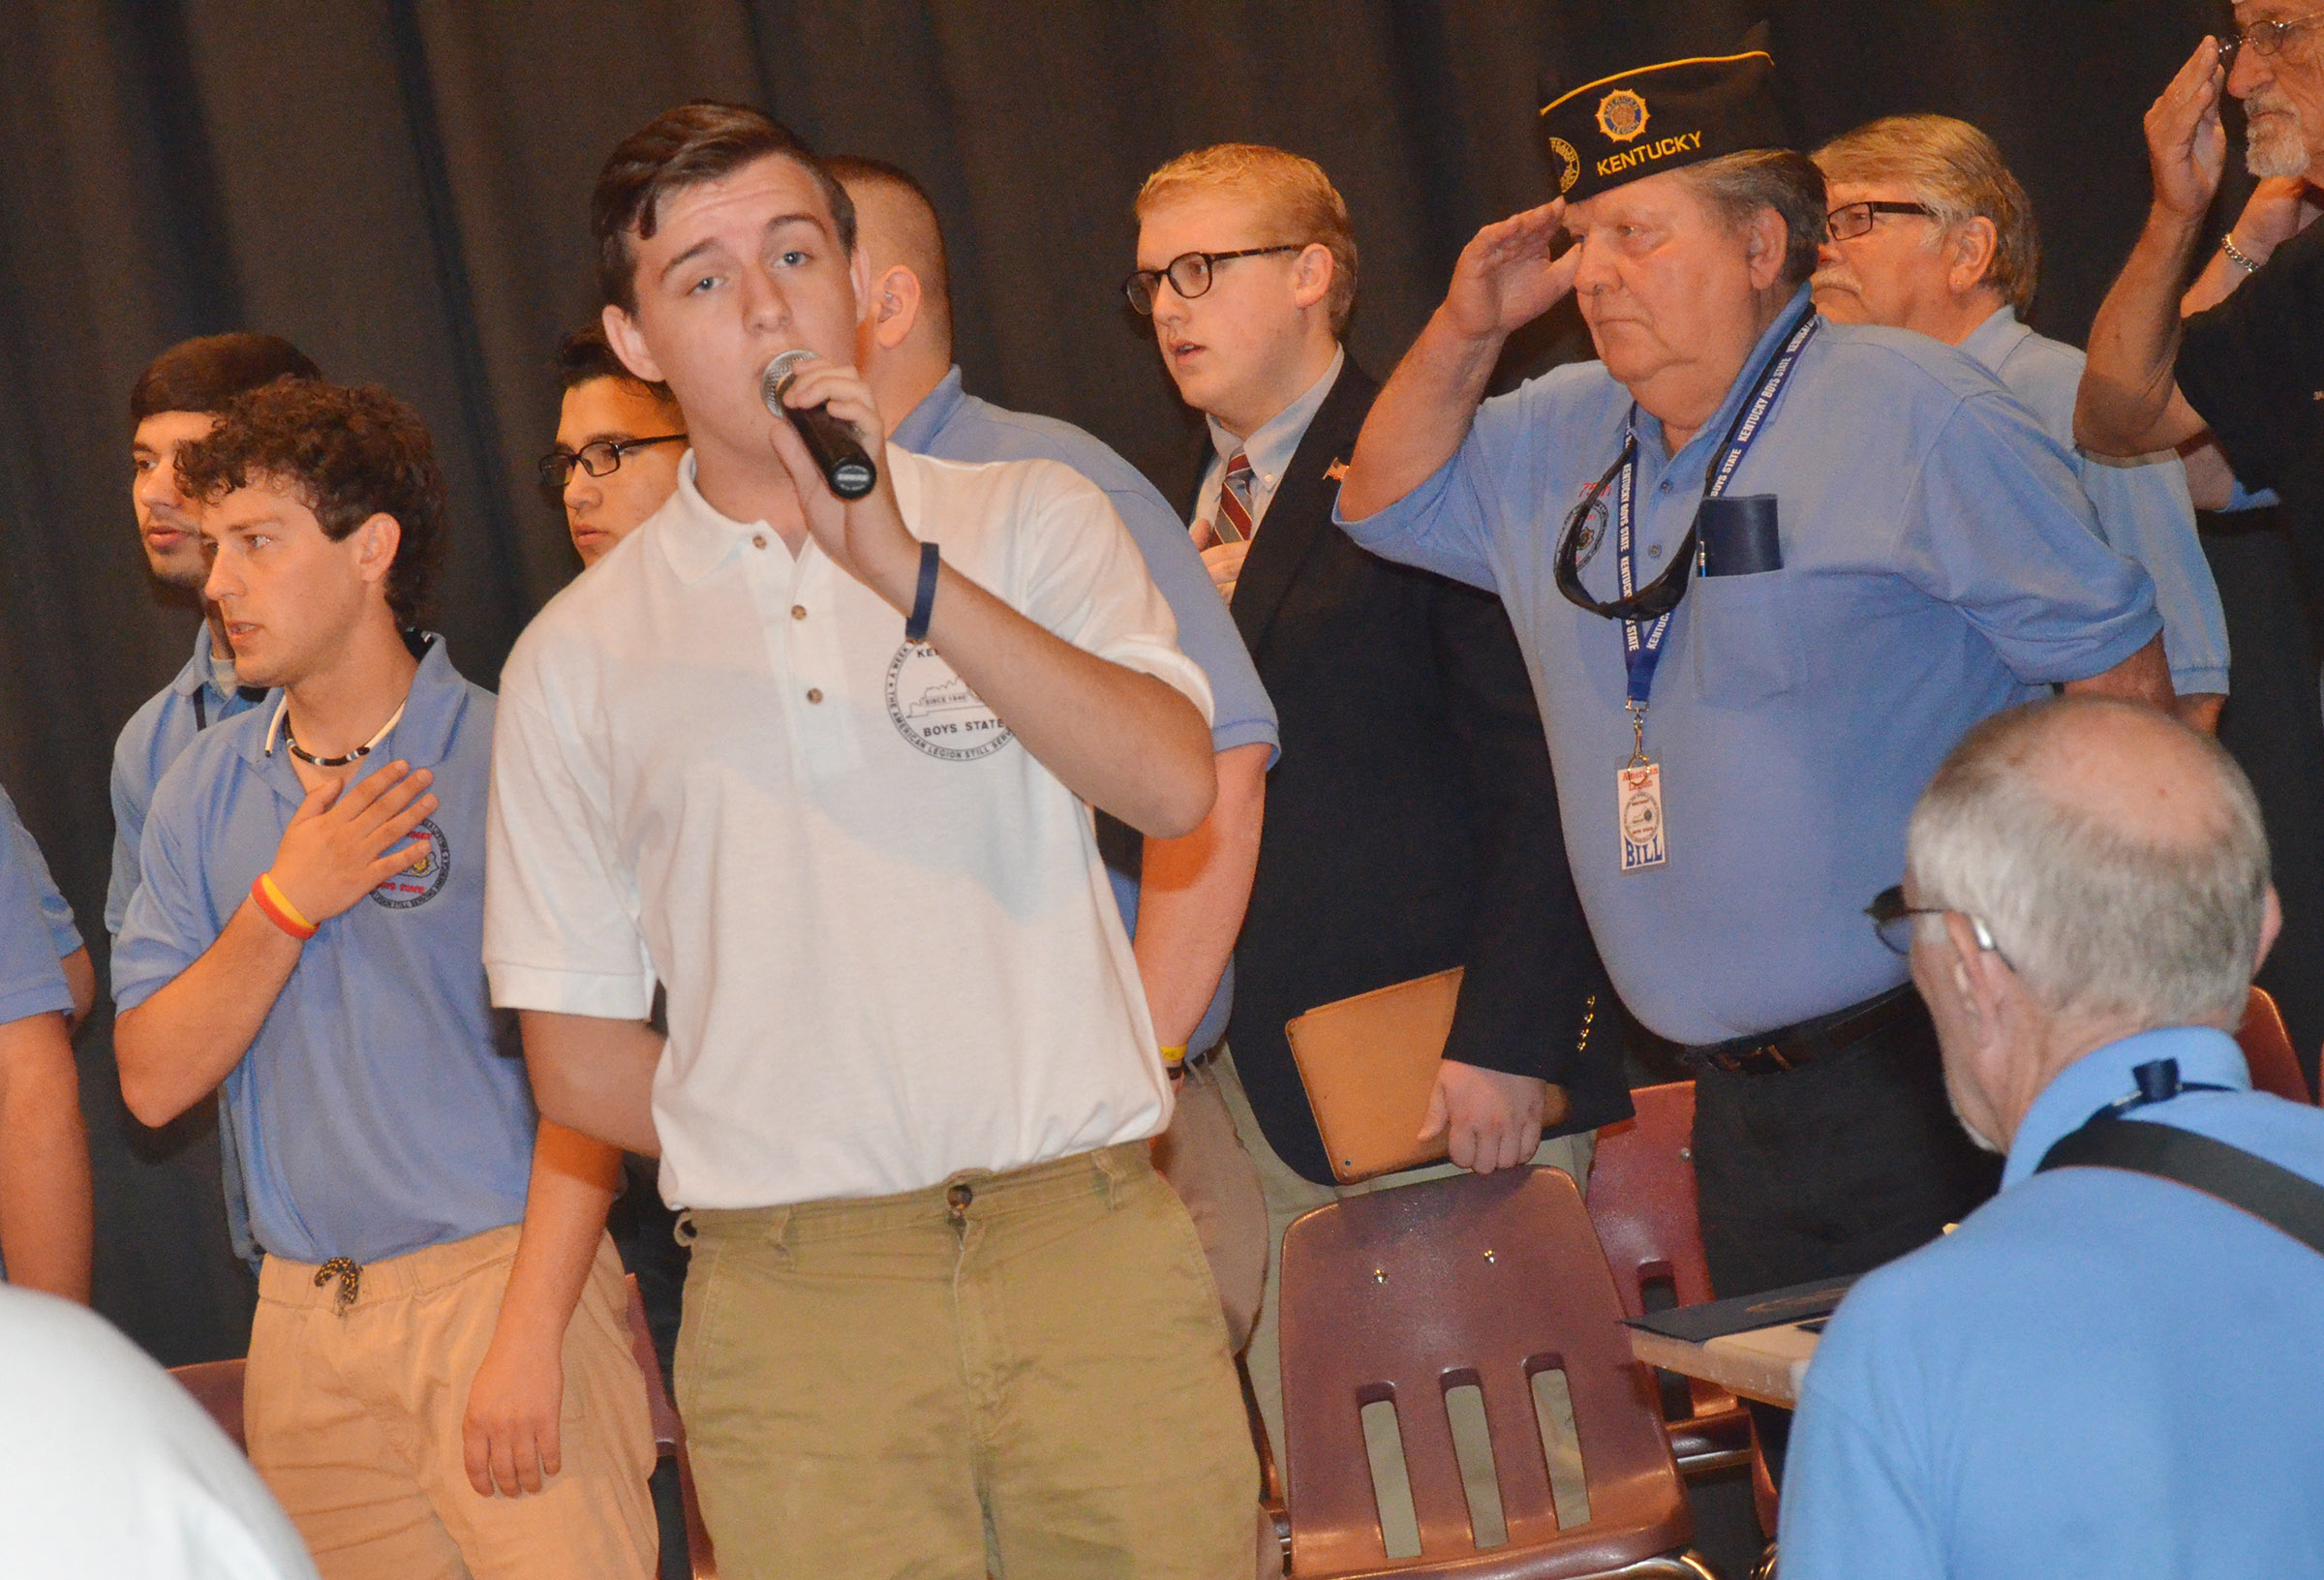 CHS senior Austin Fitzgerald sings the National Anthem at the Boys State graduation ceremony.